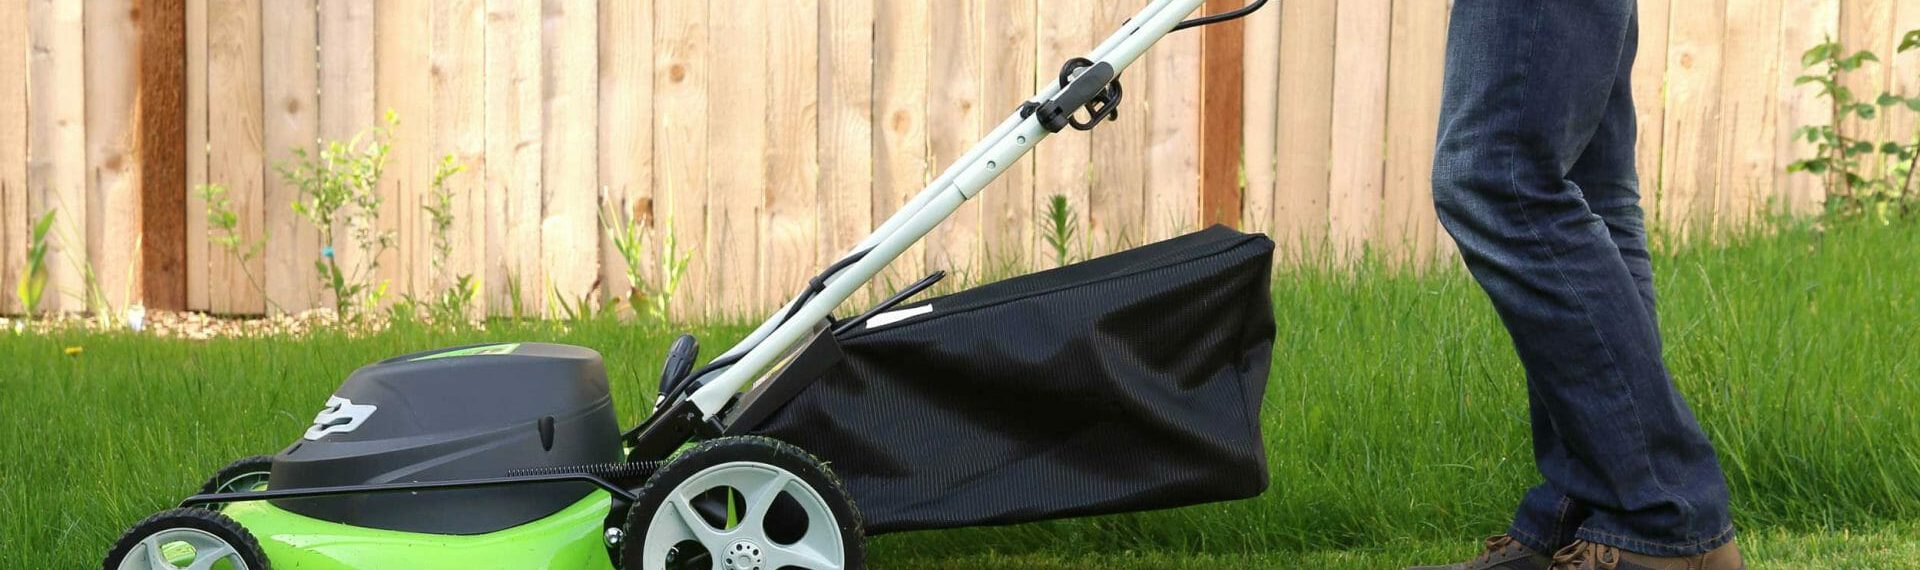 Lawn Mowing Business Insurance: Explained